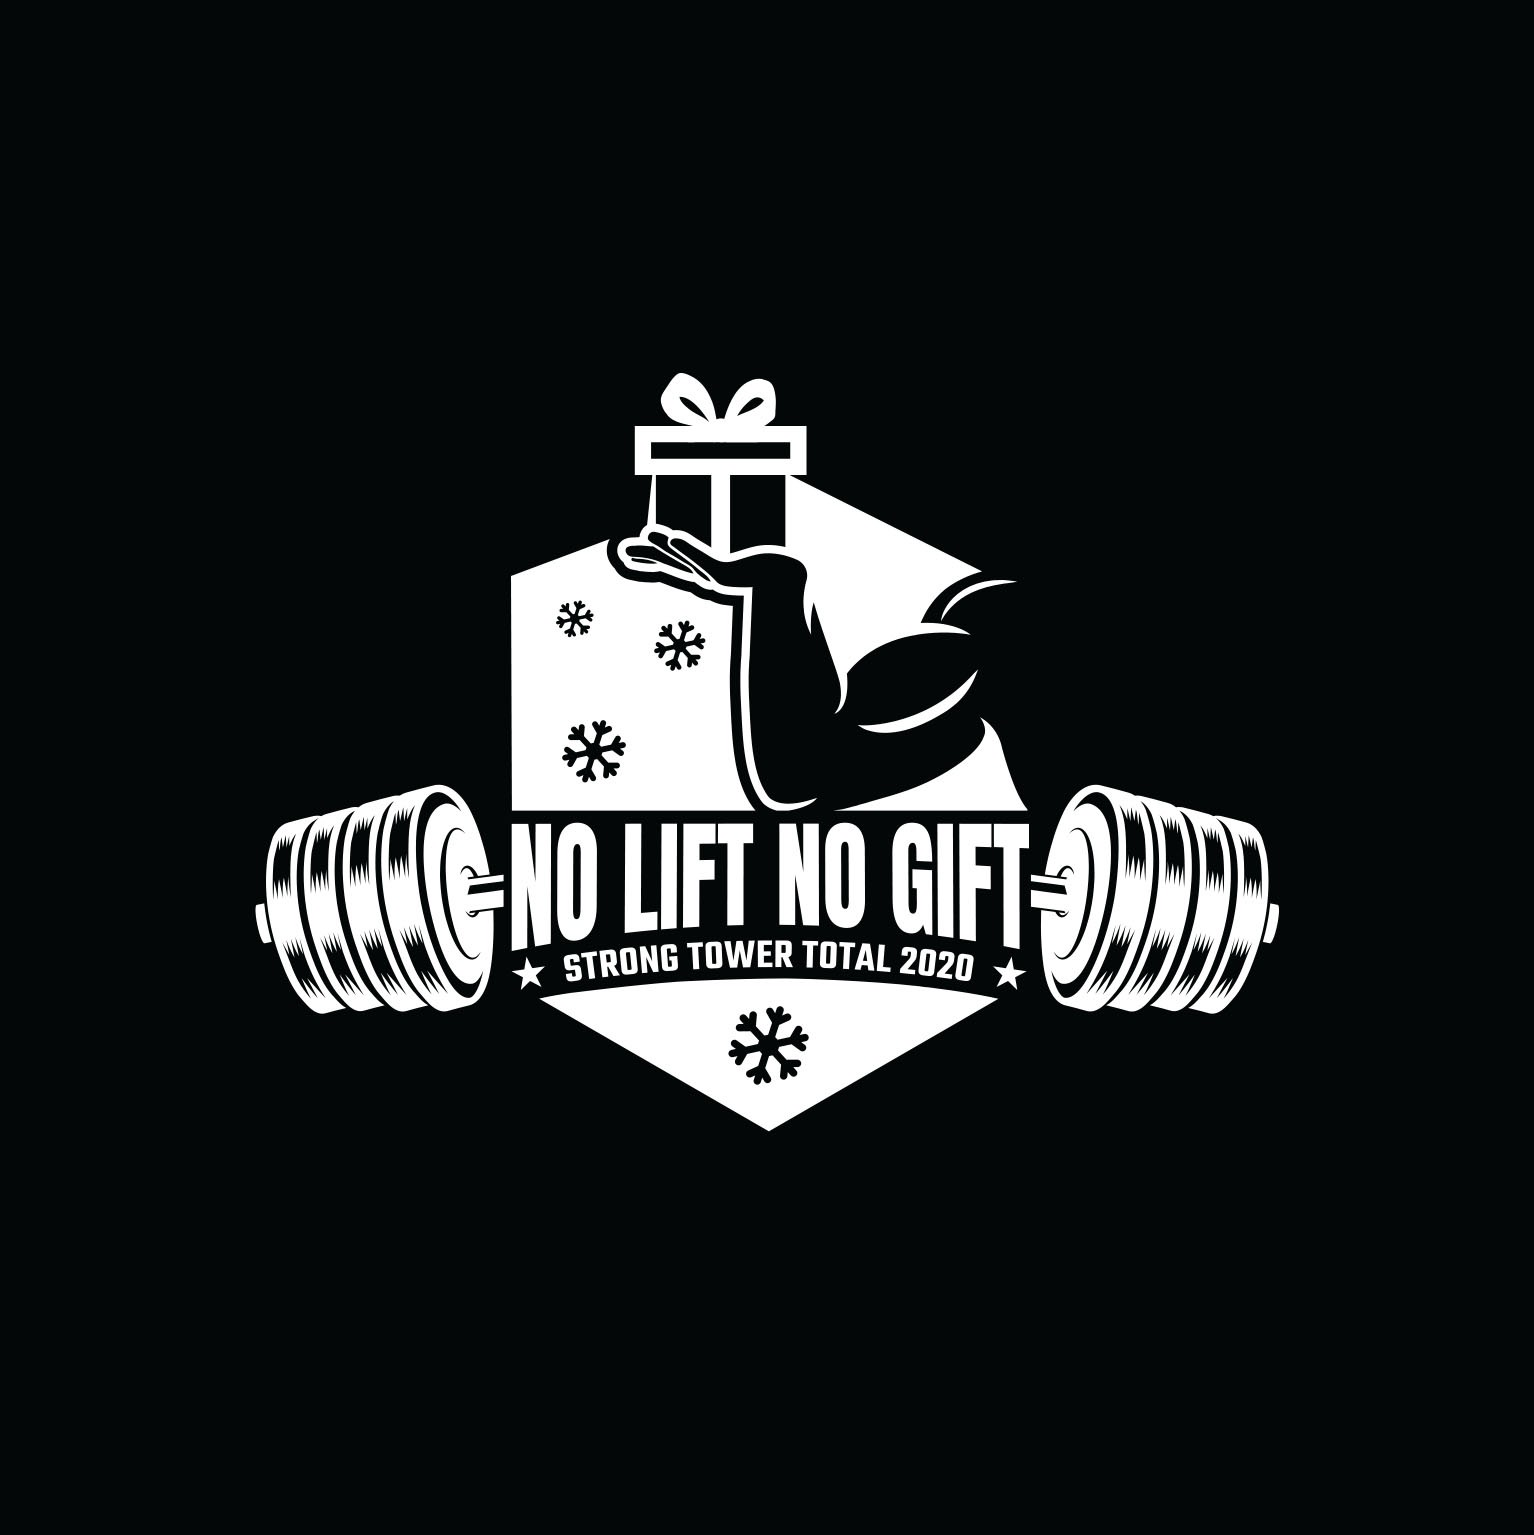 No Gift No Lift! Design a logo for a weightlifting event!